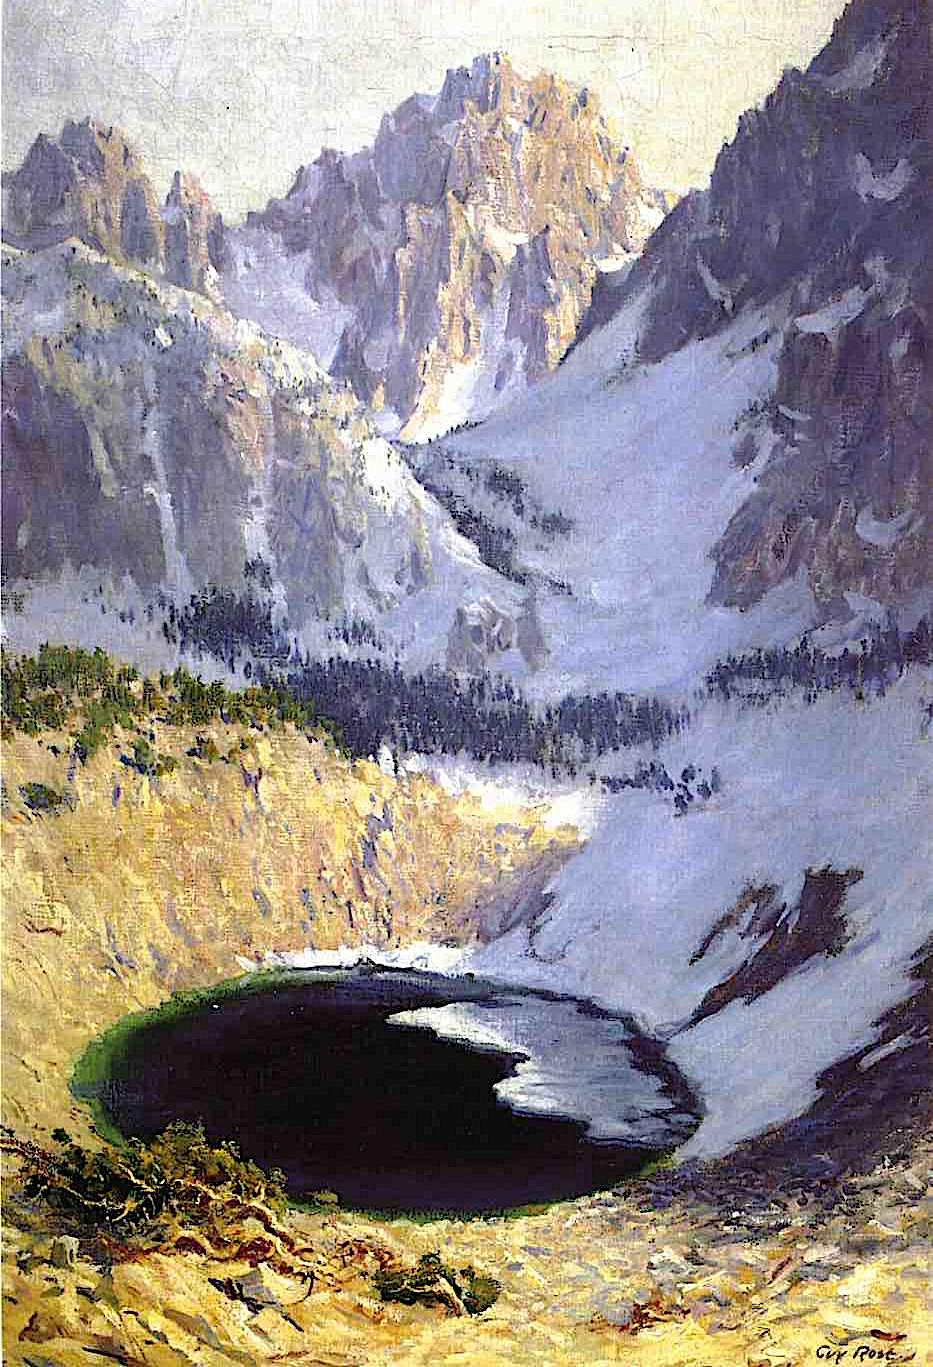 a Guy Rose painting of a crater lake in winter